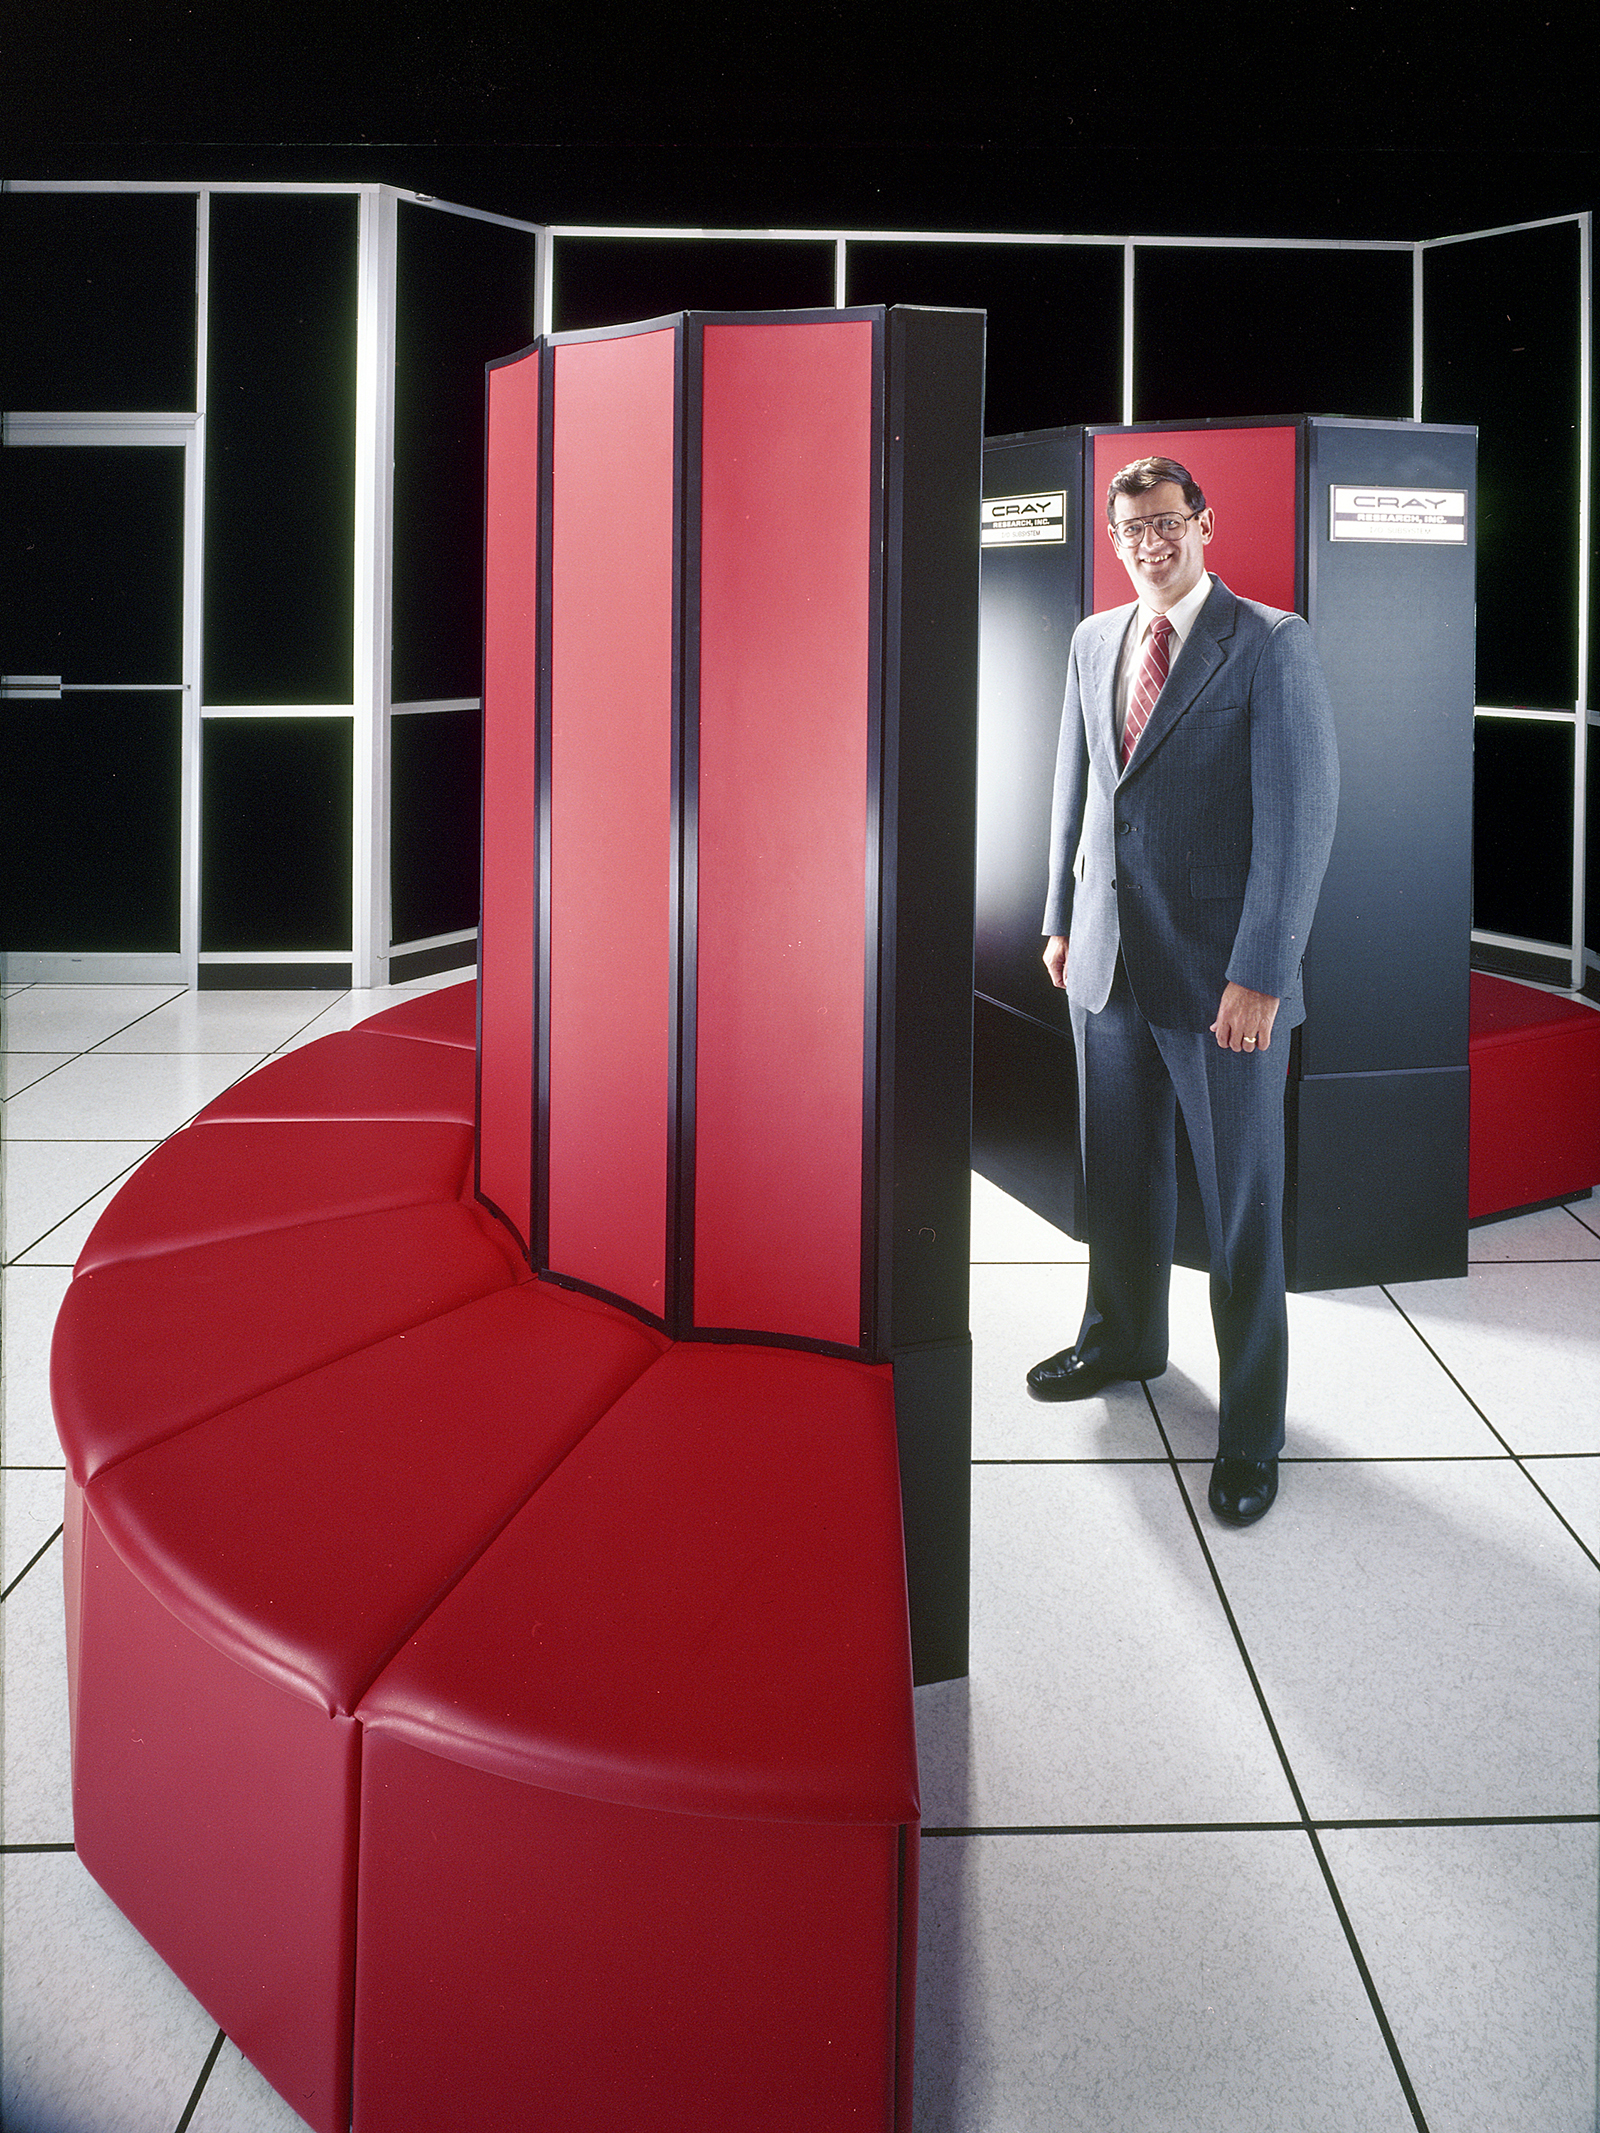 David P. Weber, Director of Argonne's Computing and Telecommunications Division from 1986-1994, with Argonne's Cray X-MP computer, a shared-memory parallel vector processor, in 1982. The Cray X-MP was the world's fastest computer between 1983-1985.